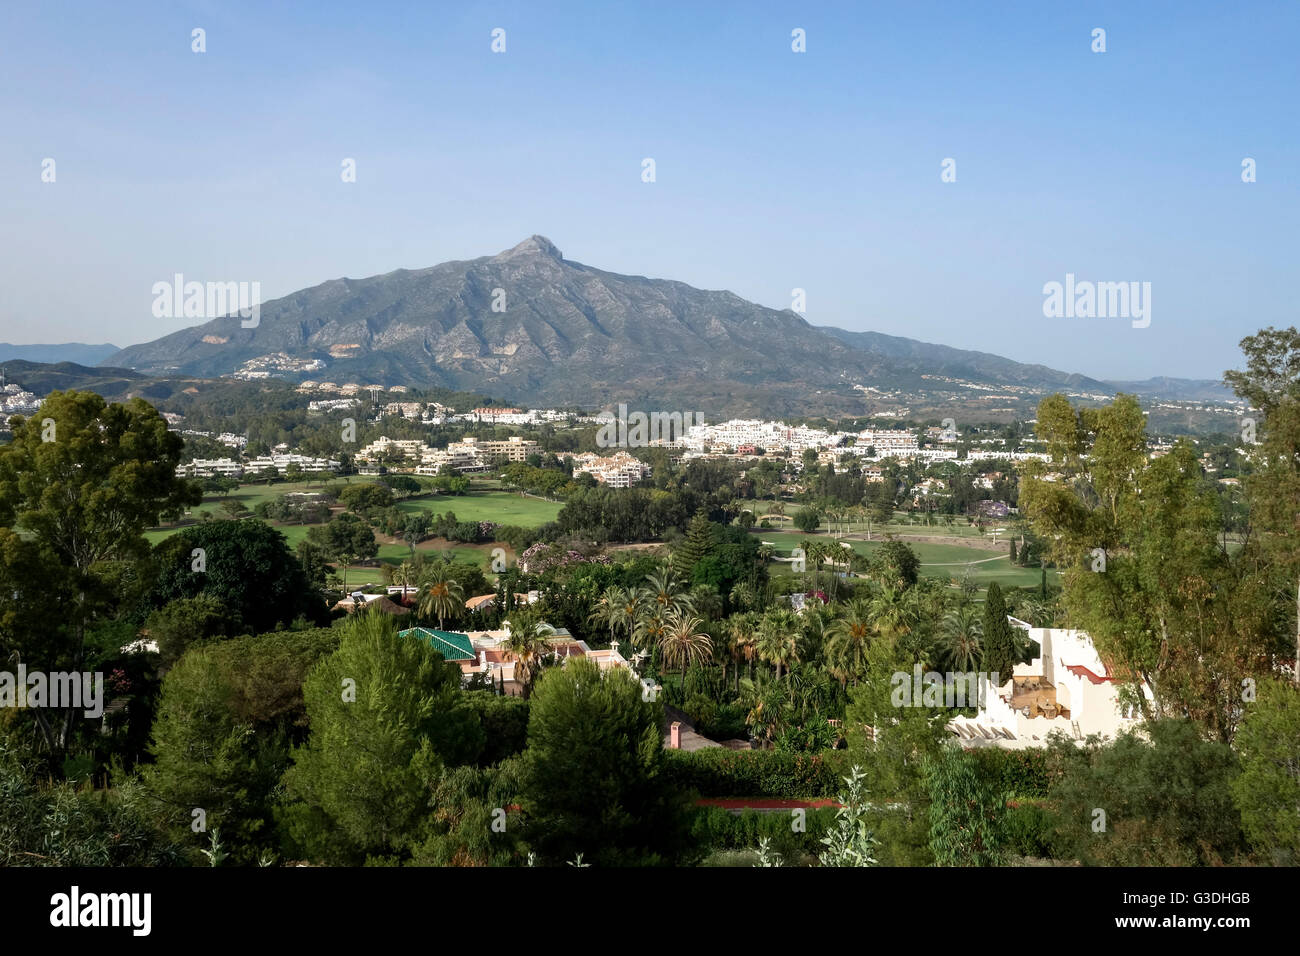 Overlooking golf courses of Marbella, with La Concha mountain in background, Marbella, Andalusia, Spain. Stock Photo